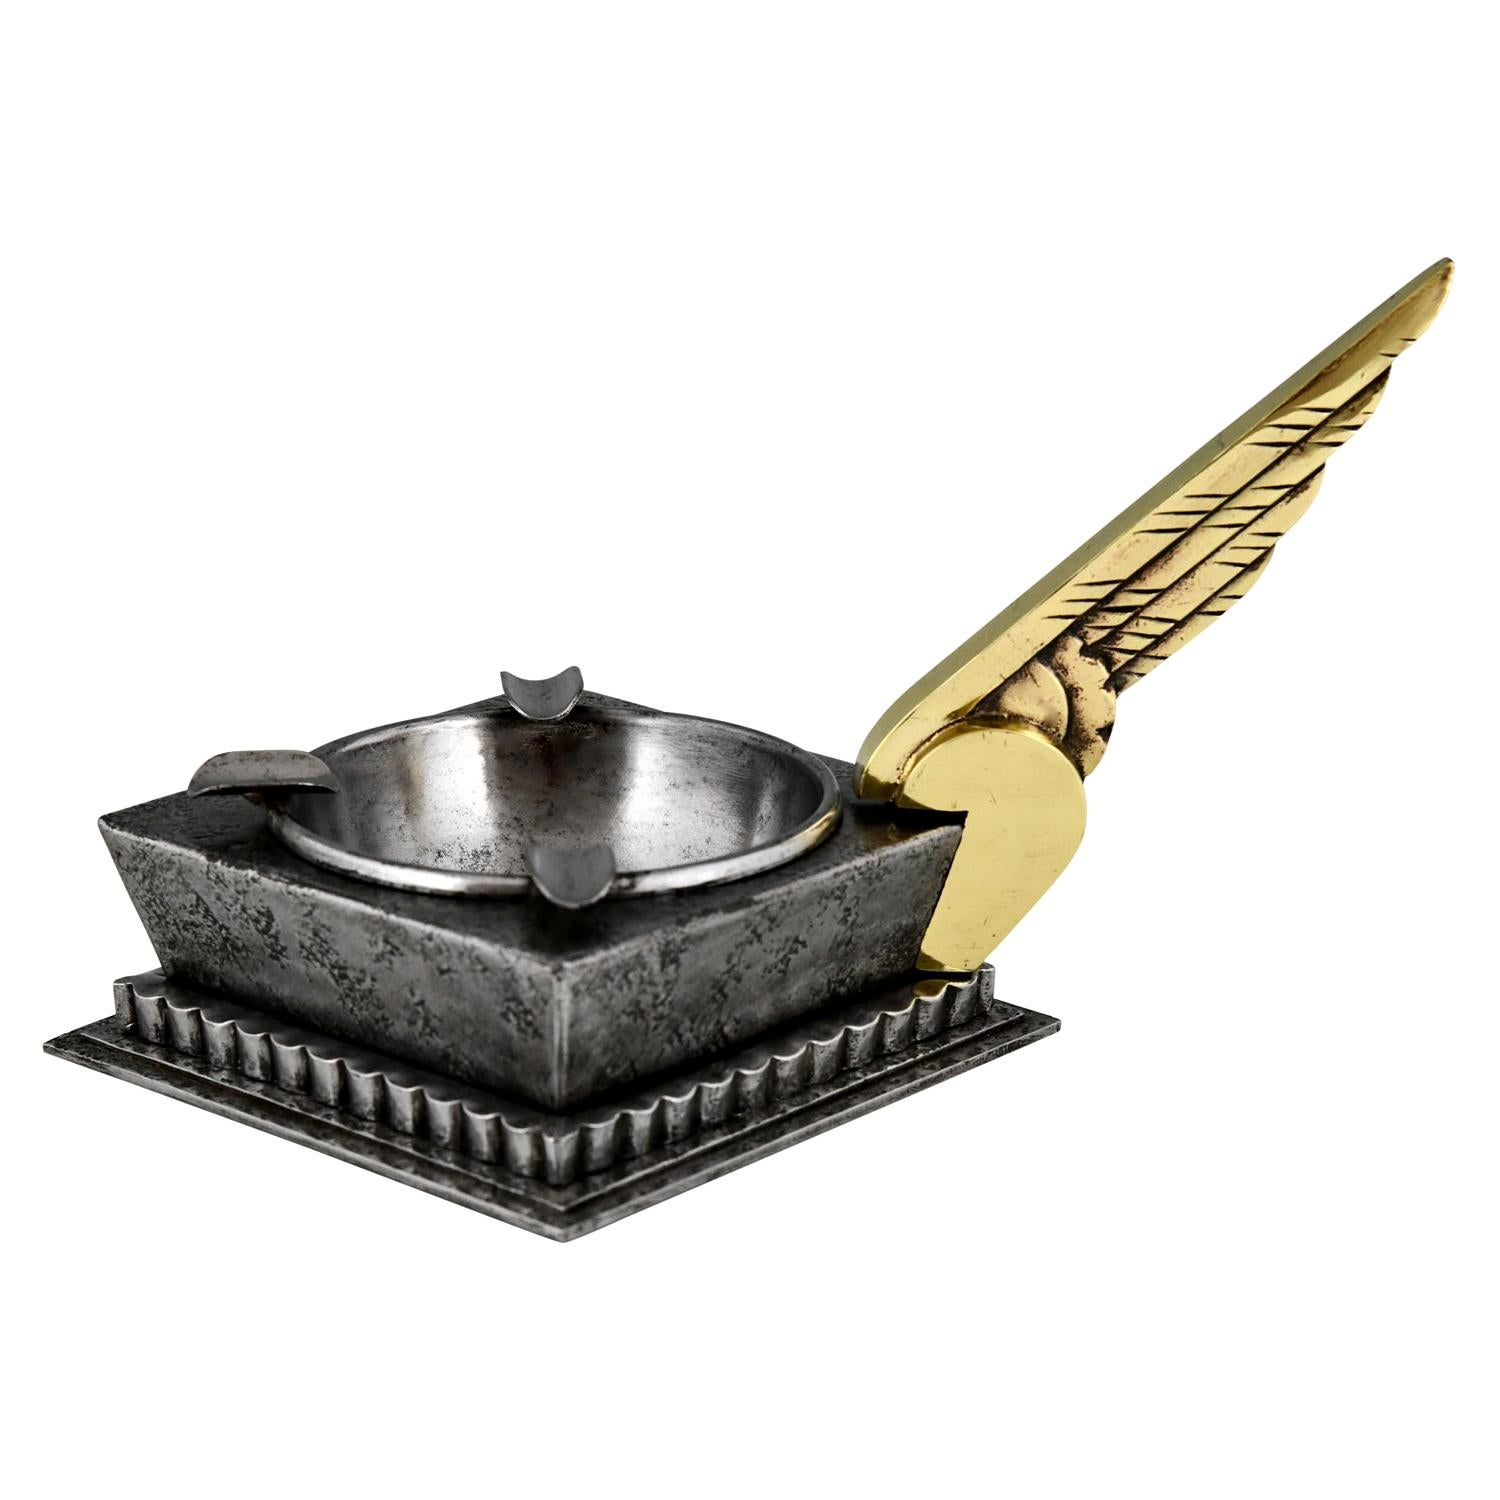 Art Deco Wrought Iron Ashtray with Wing Edgar Brandt, 1930